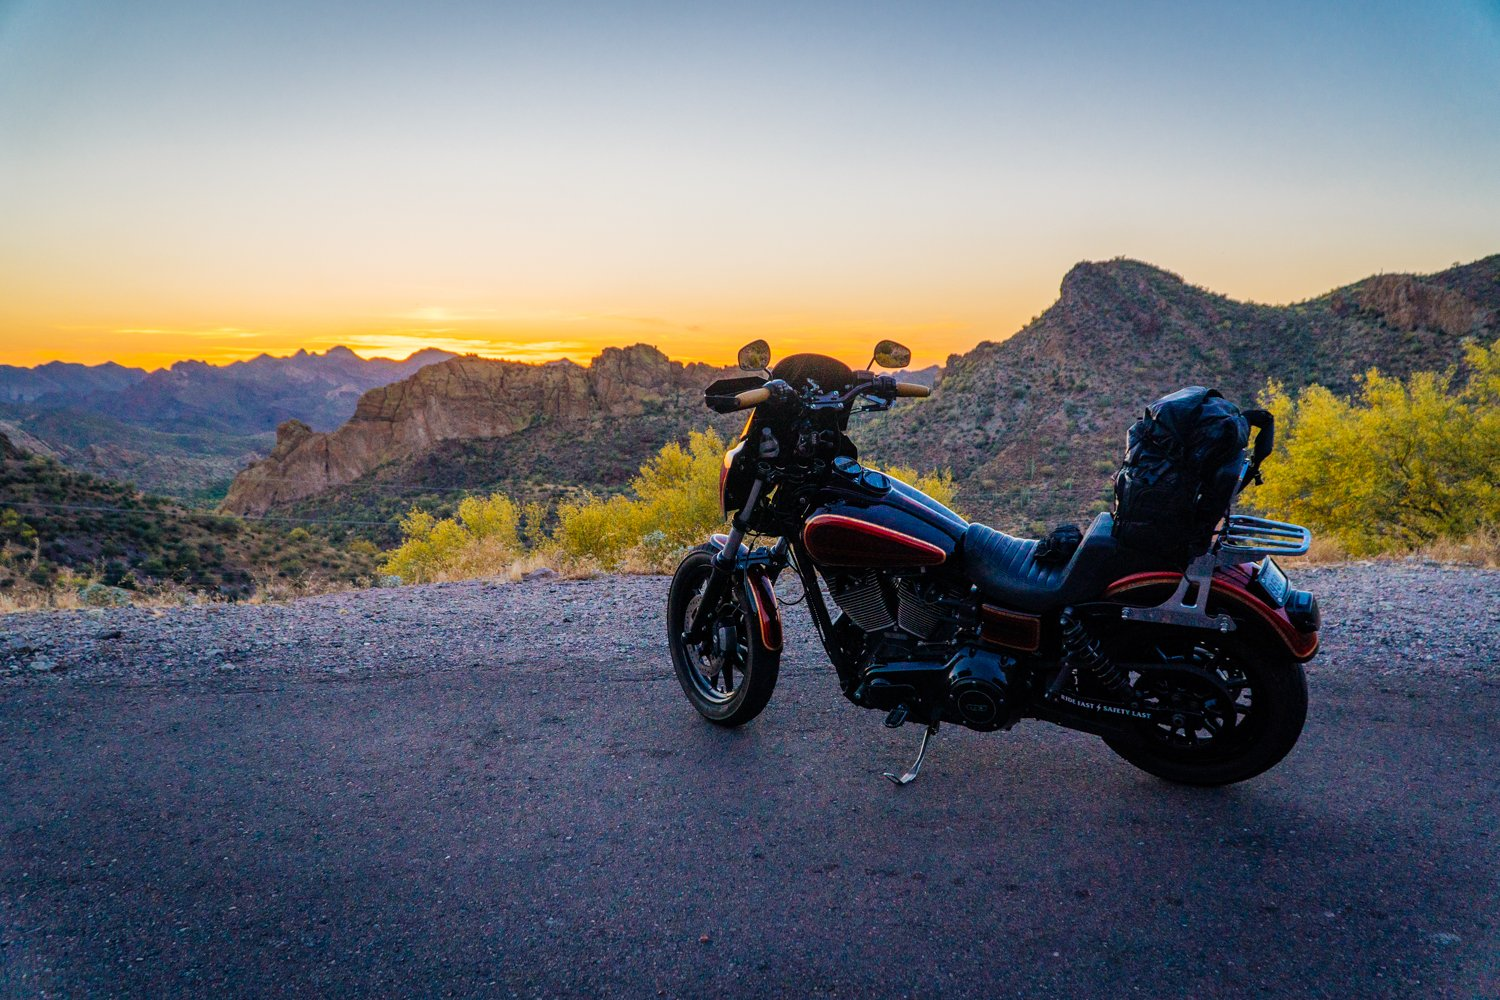 Scenic Rides Within an Hour of Downtown Phoenix